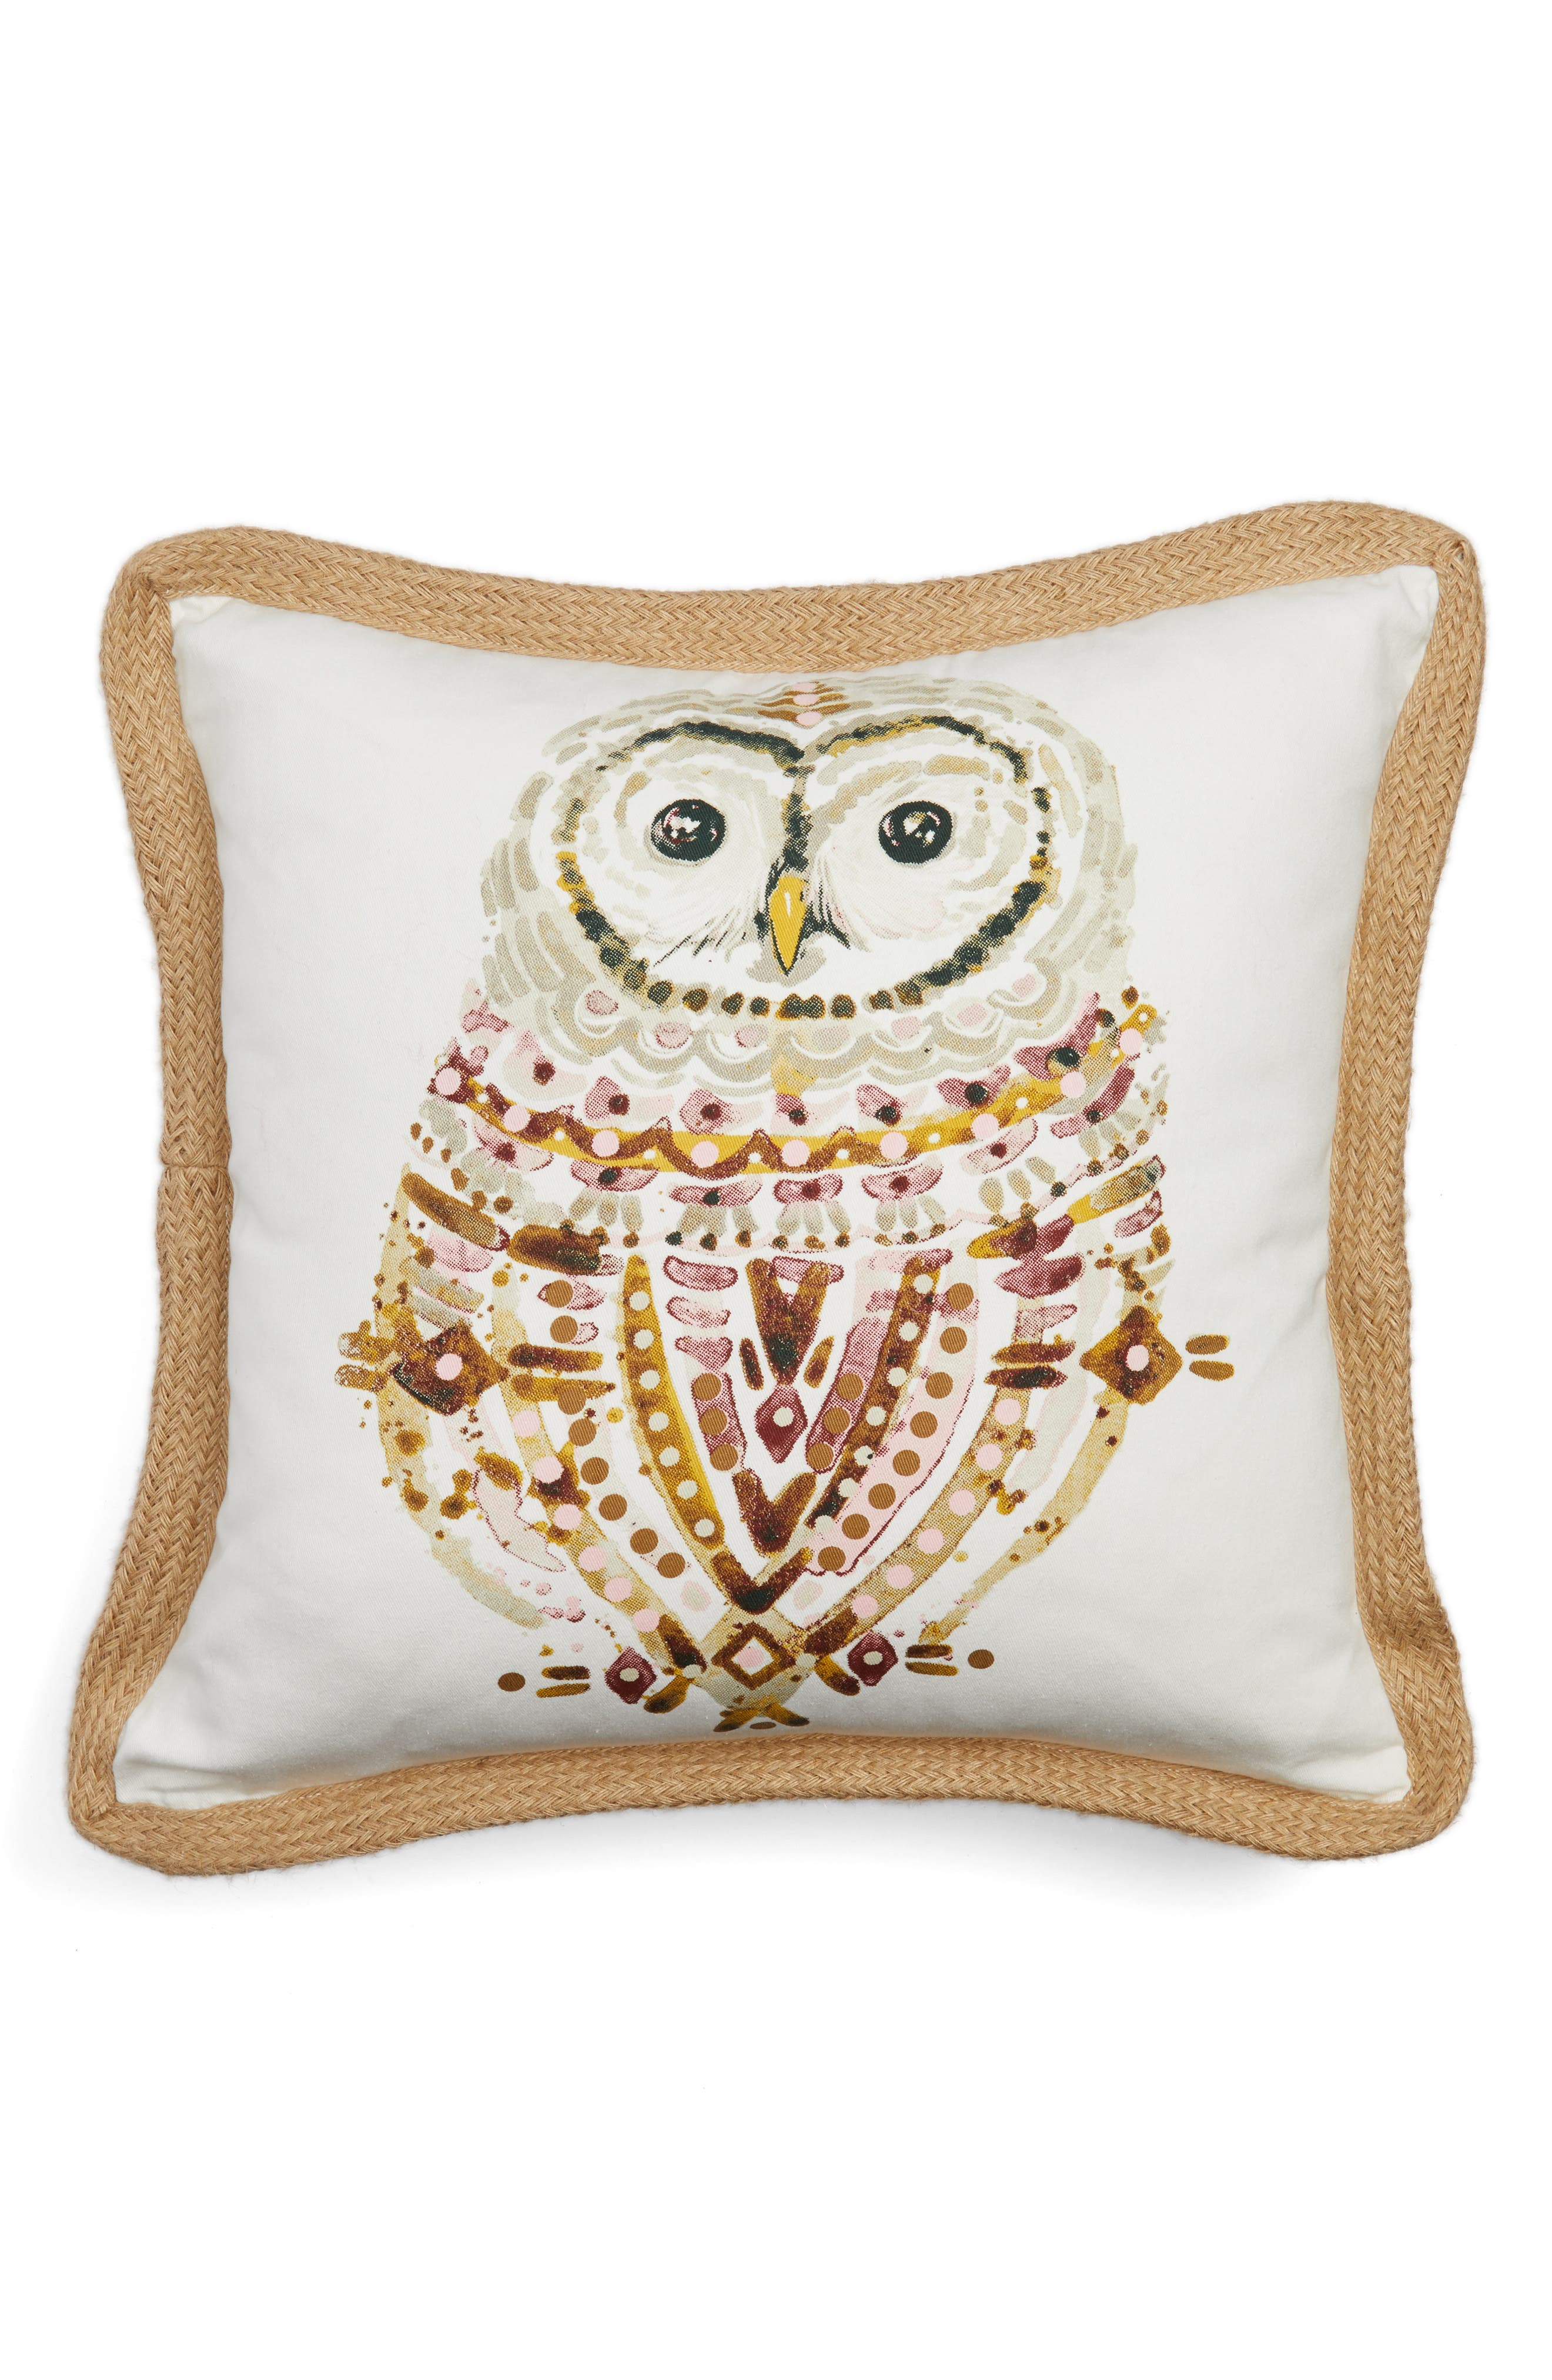 Alternate Image 1 Selected - Levtex Owl Pillow